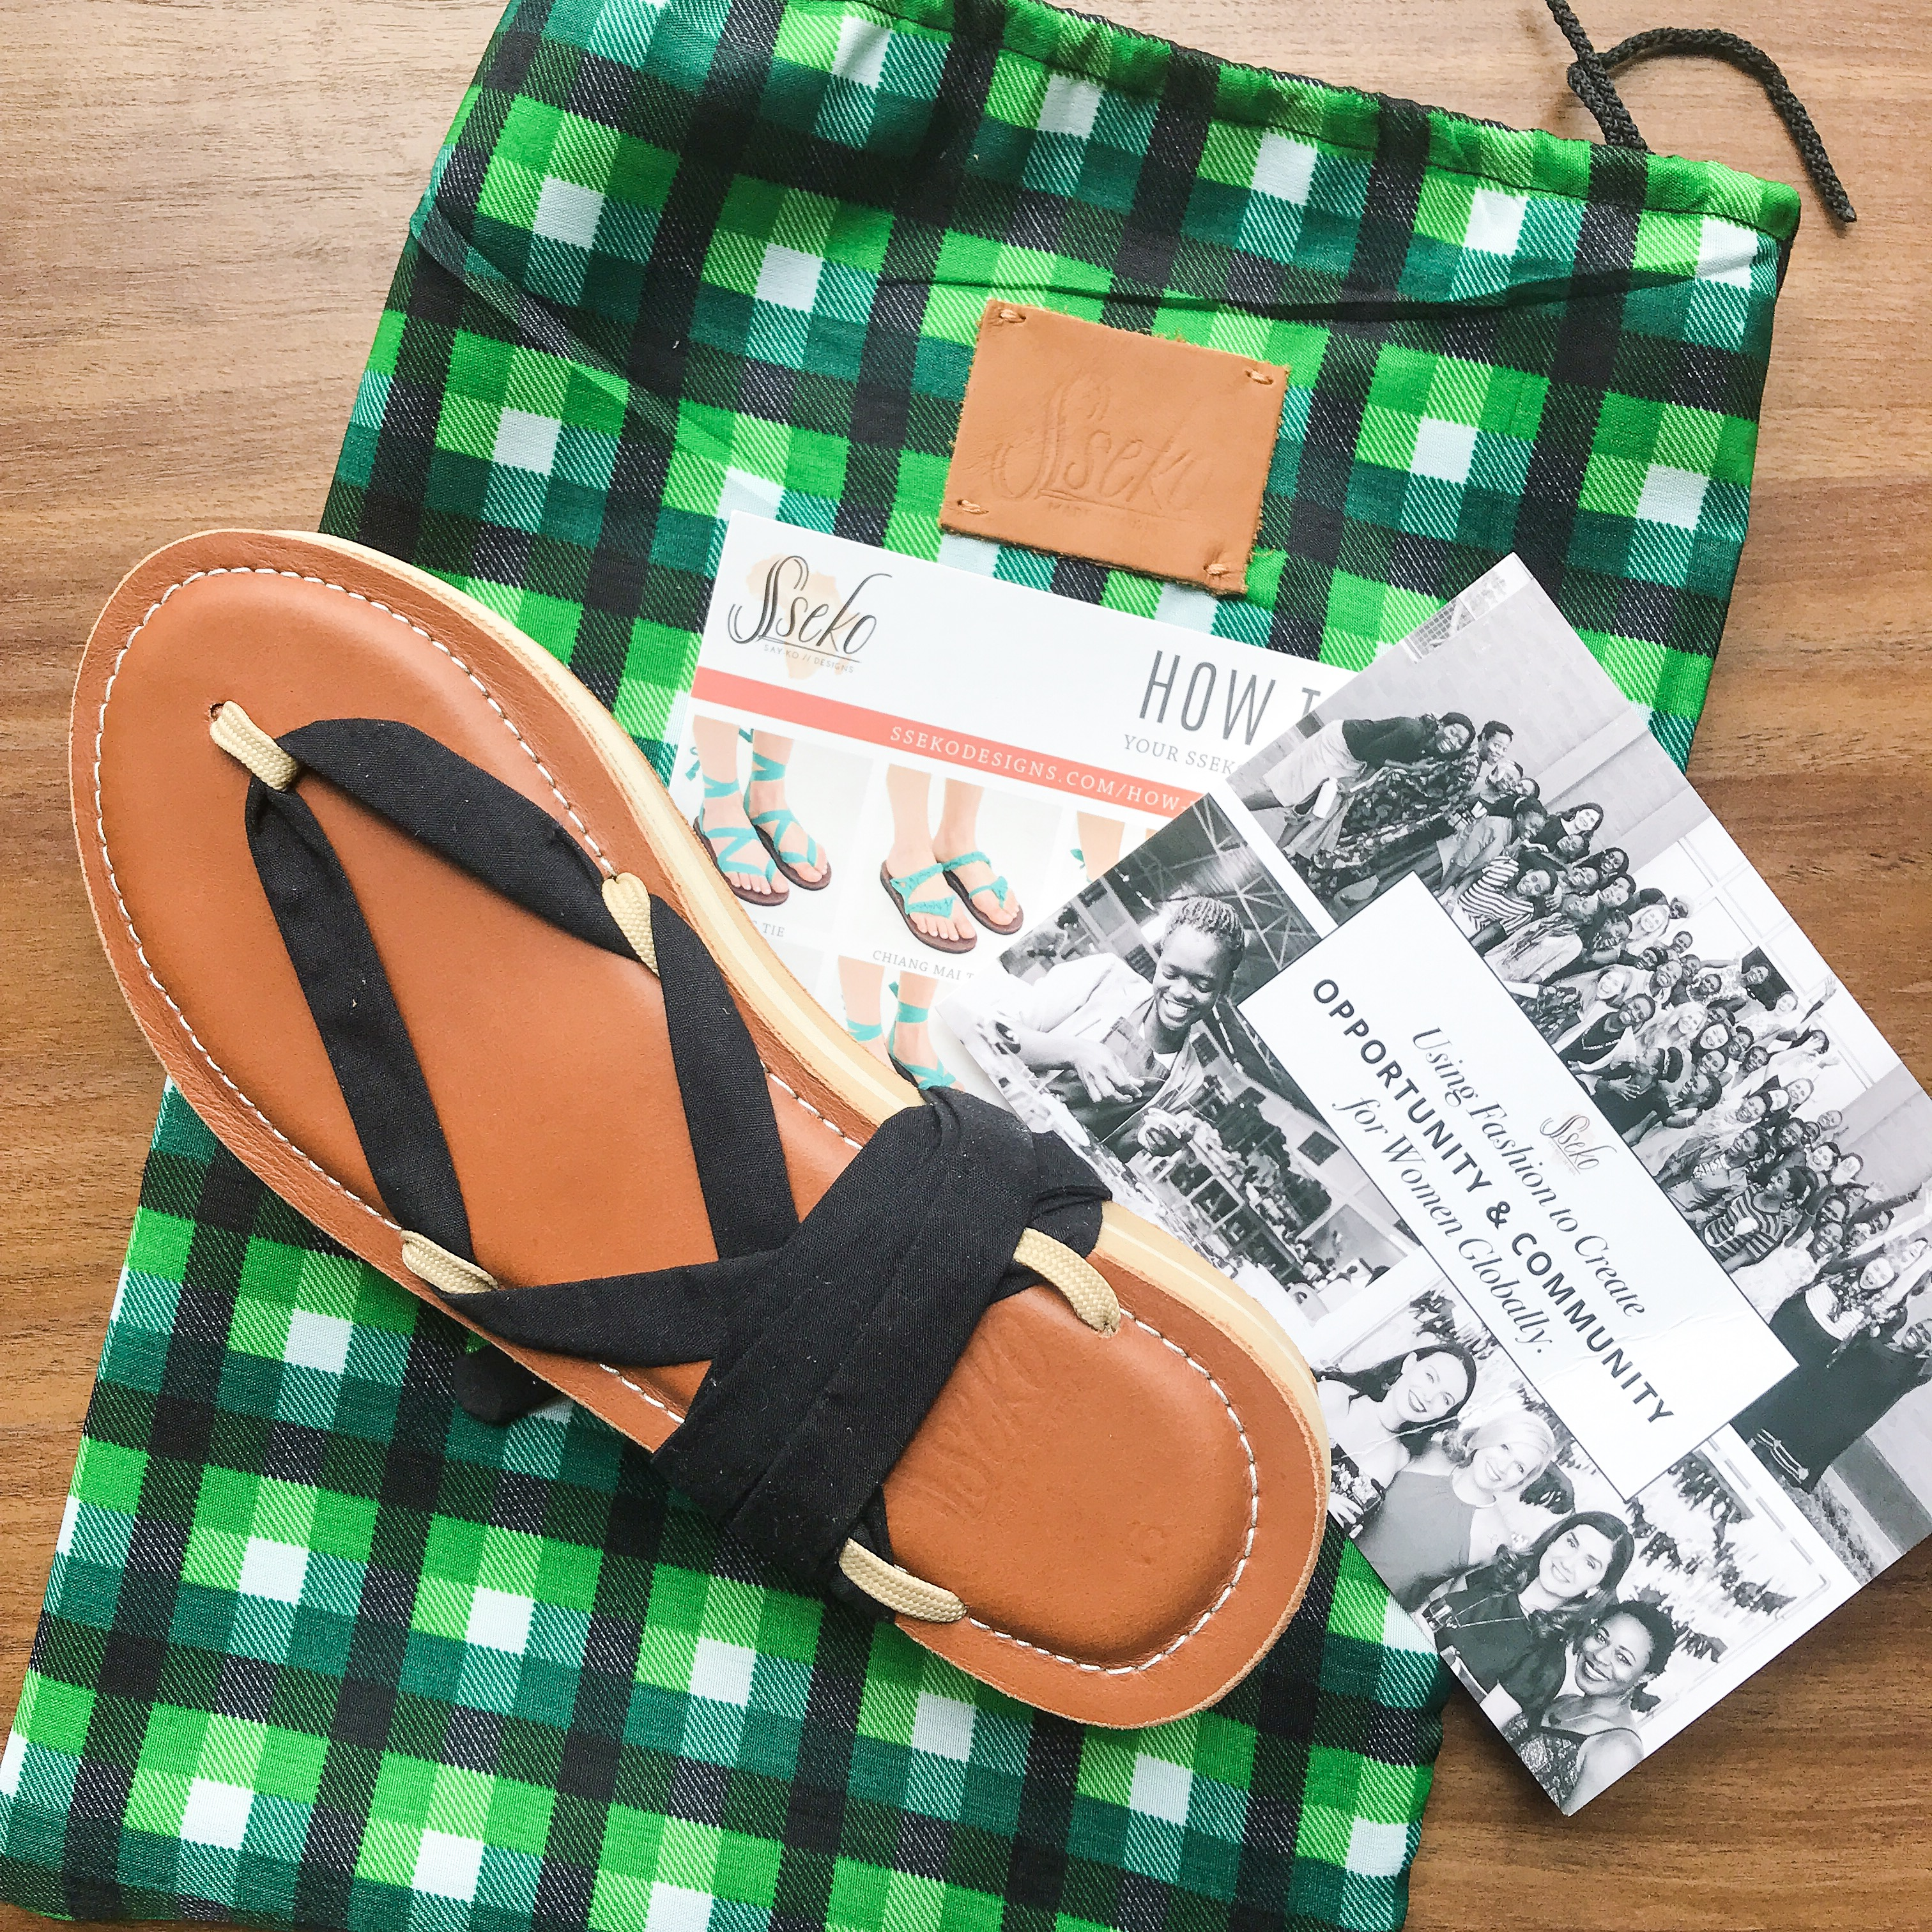 Ribbon Sandals wrapped together on top of a green drawstring bag